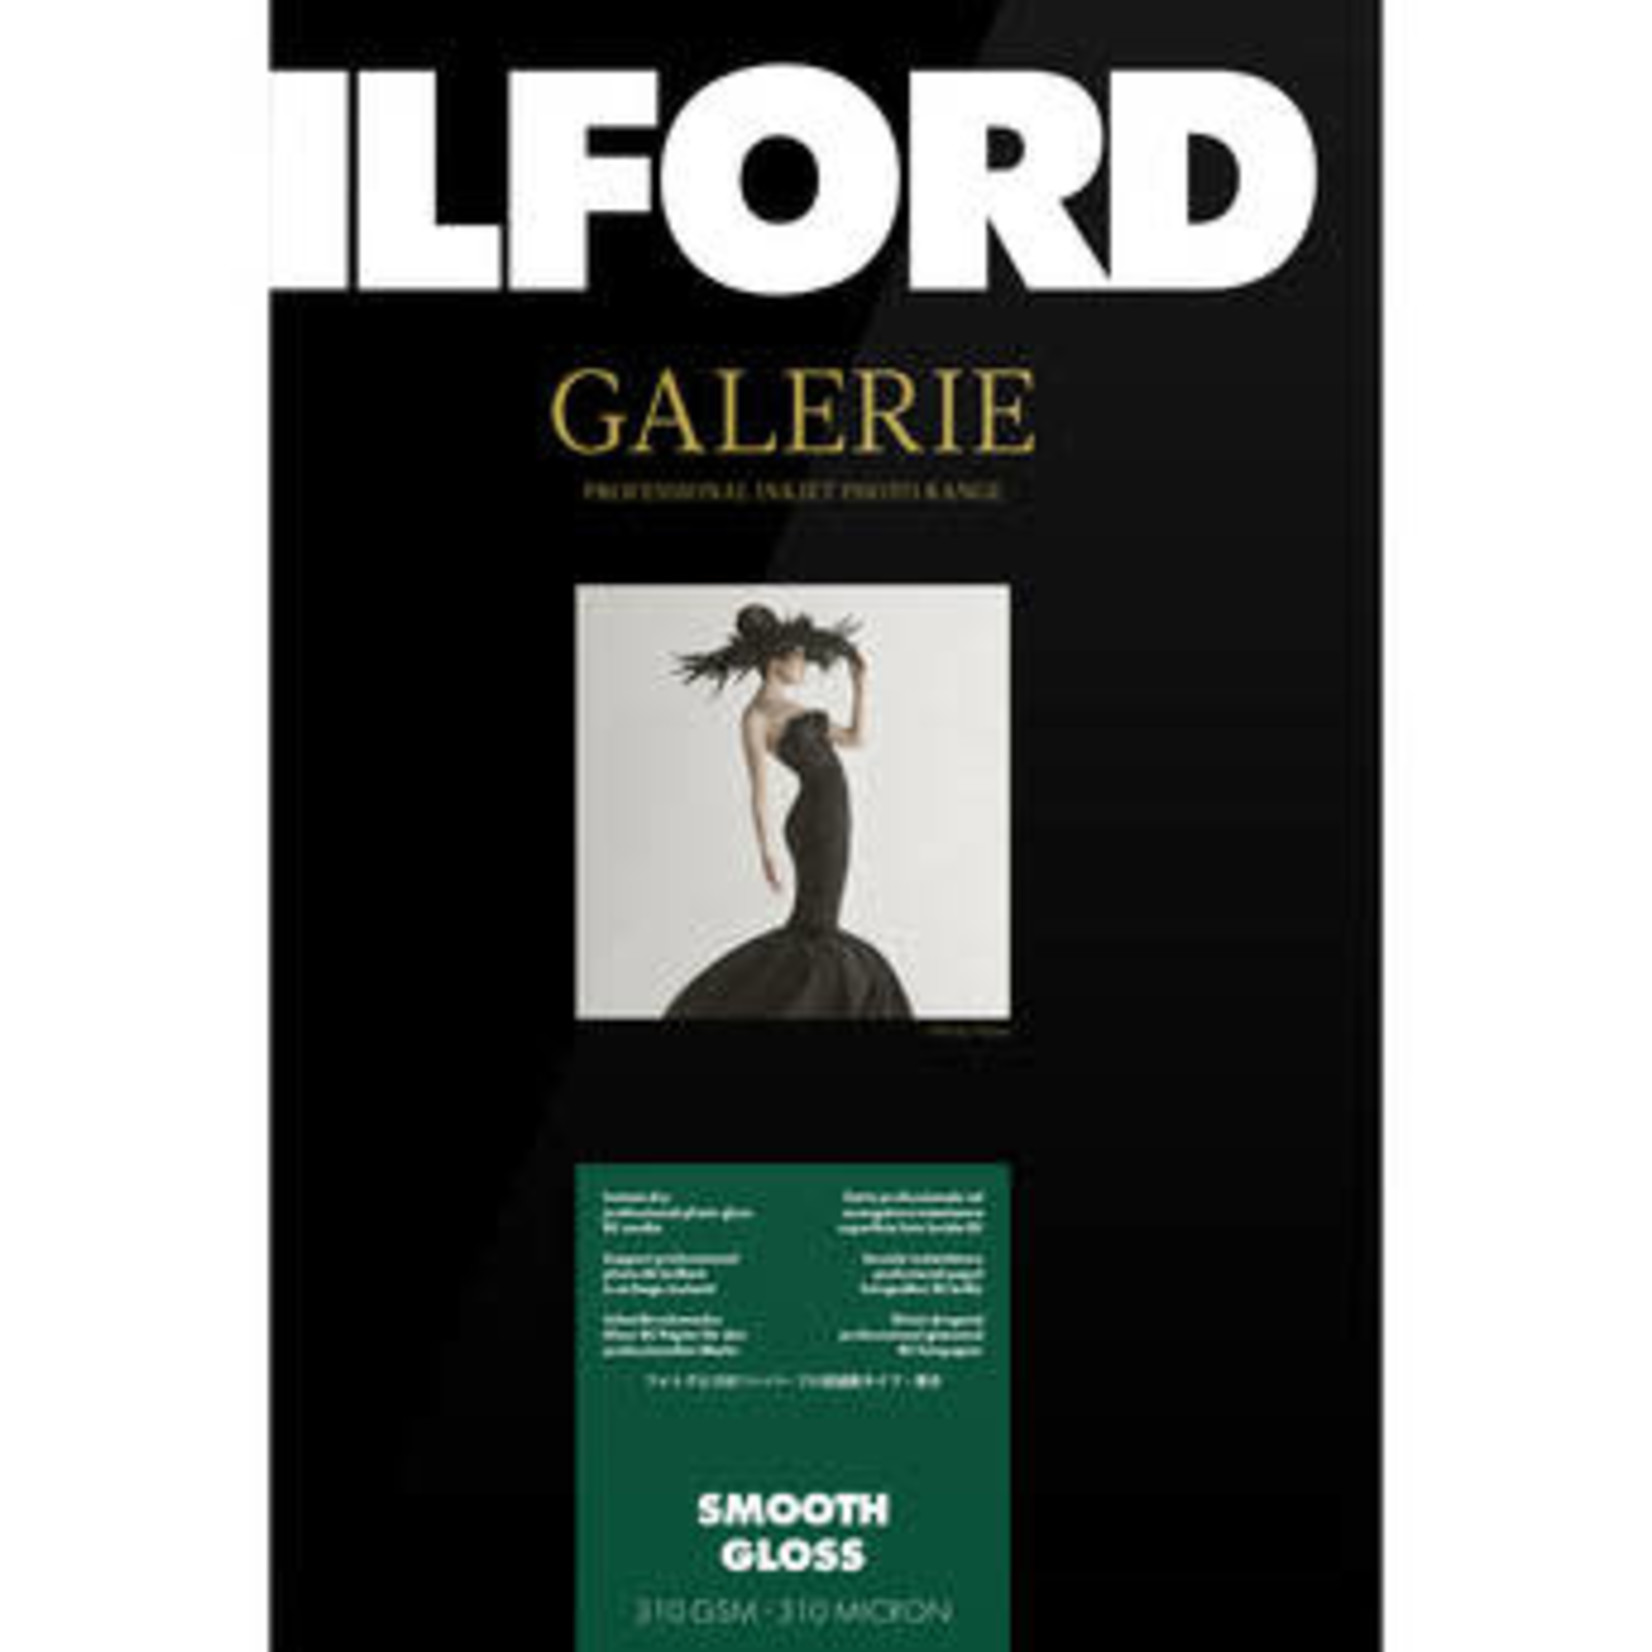 Ilford Galerie Smooth Gloss 8.5x11 (100 PK)